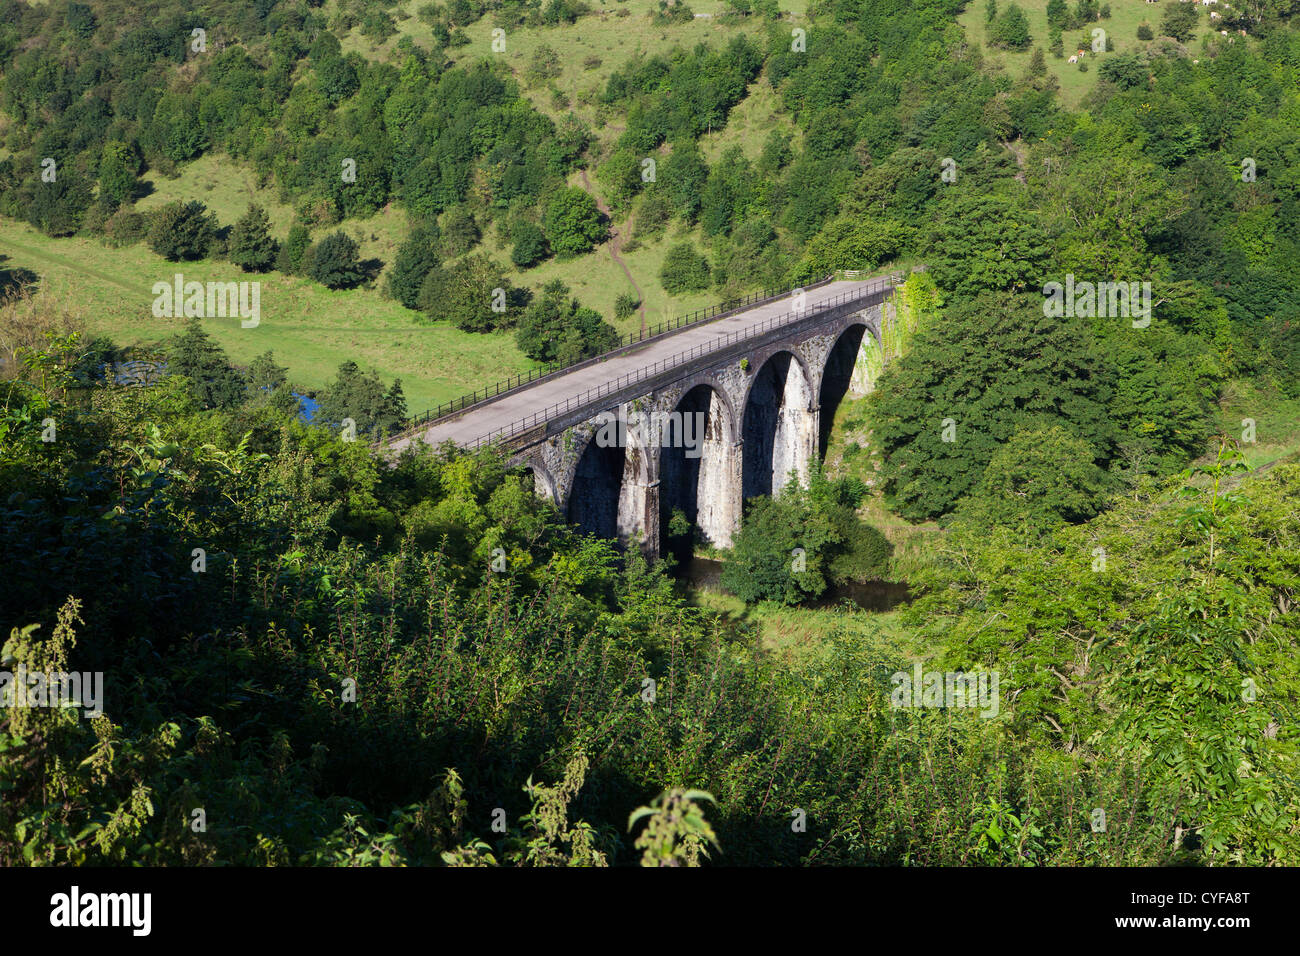 Headstone Viaduct in Monsall Dale in Derbyshire Peak District - Stock Image